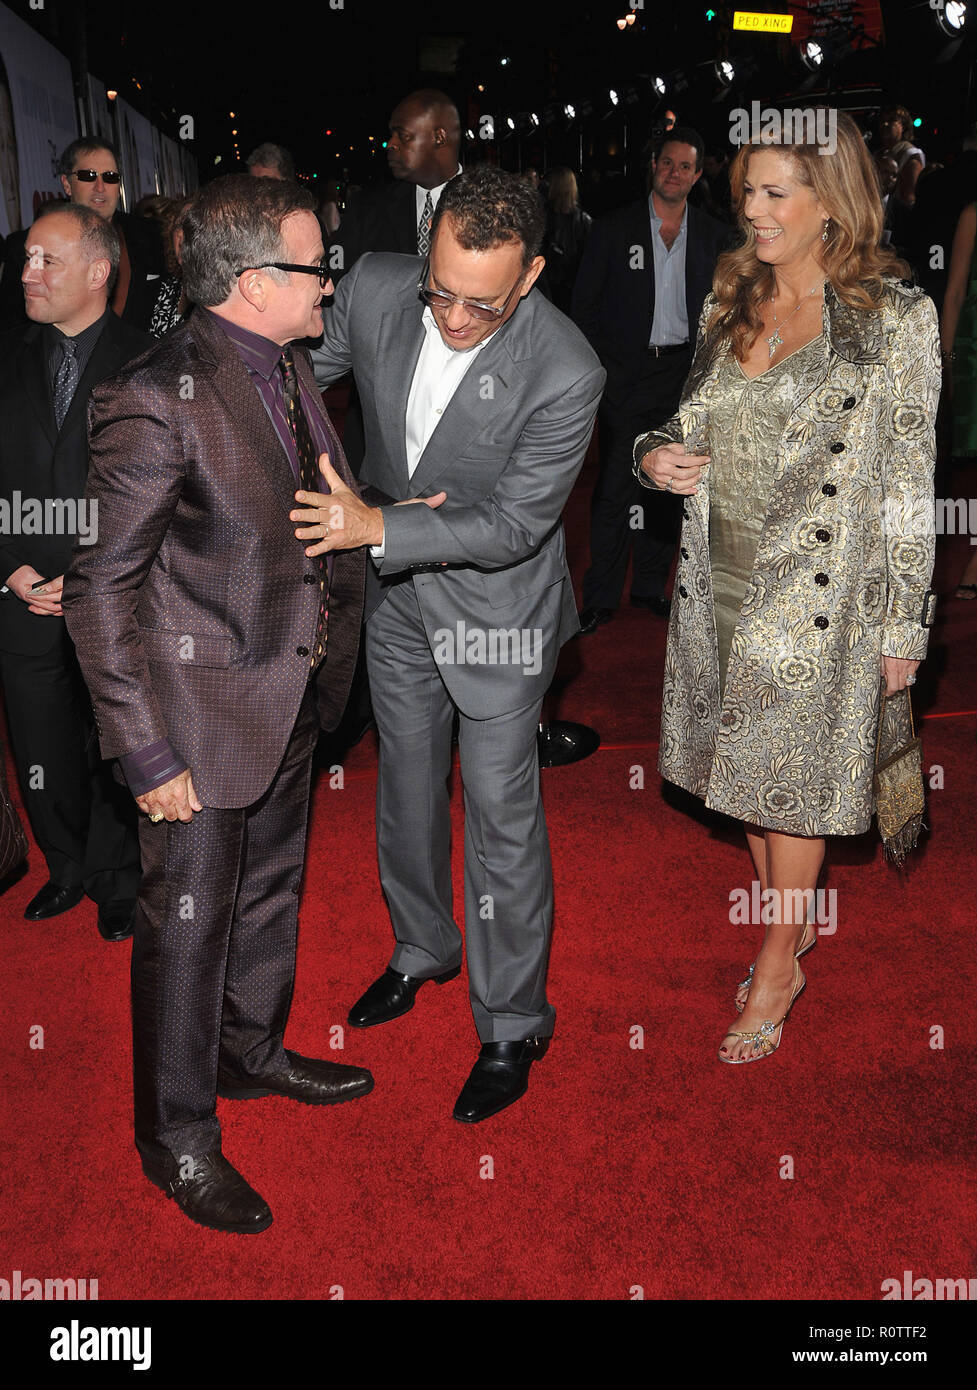 Robin Williams With John Travolta And Kelly Preston Checking The Belly Old Dogs Premiere At The El Capitan Theatre In Los Angeles Stock Photo Alamy